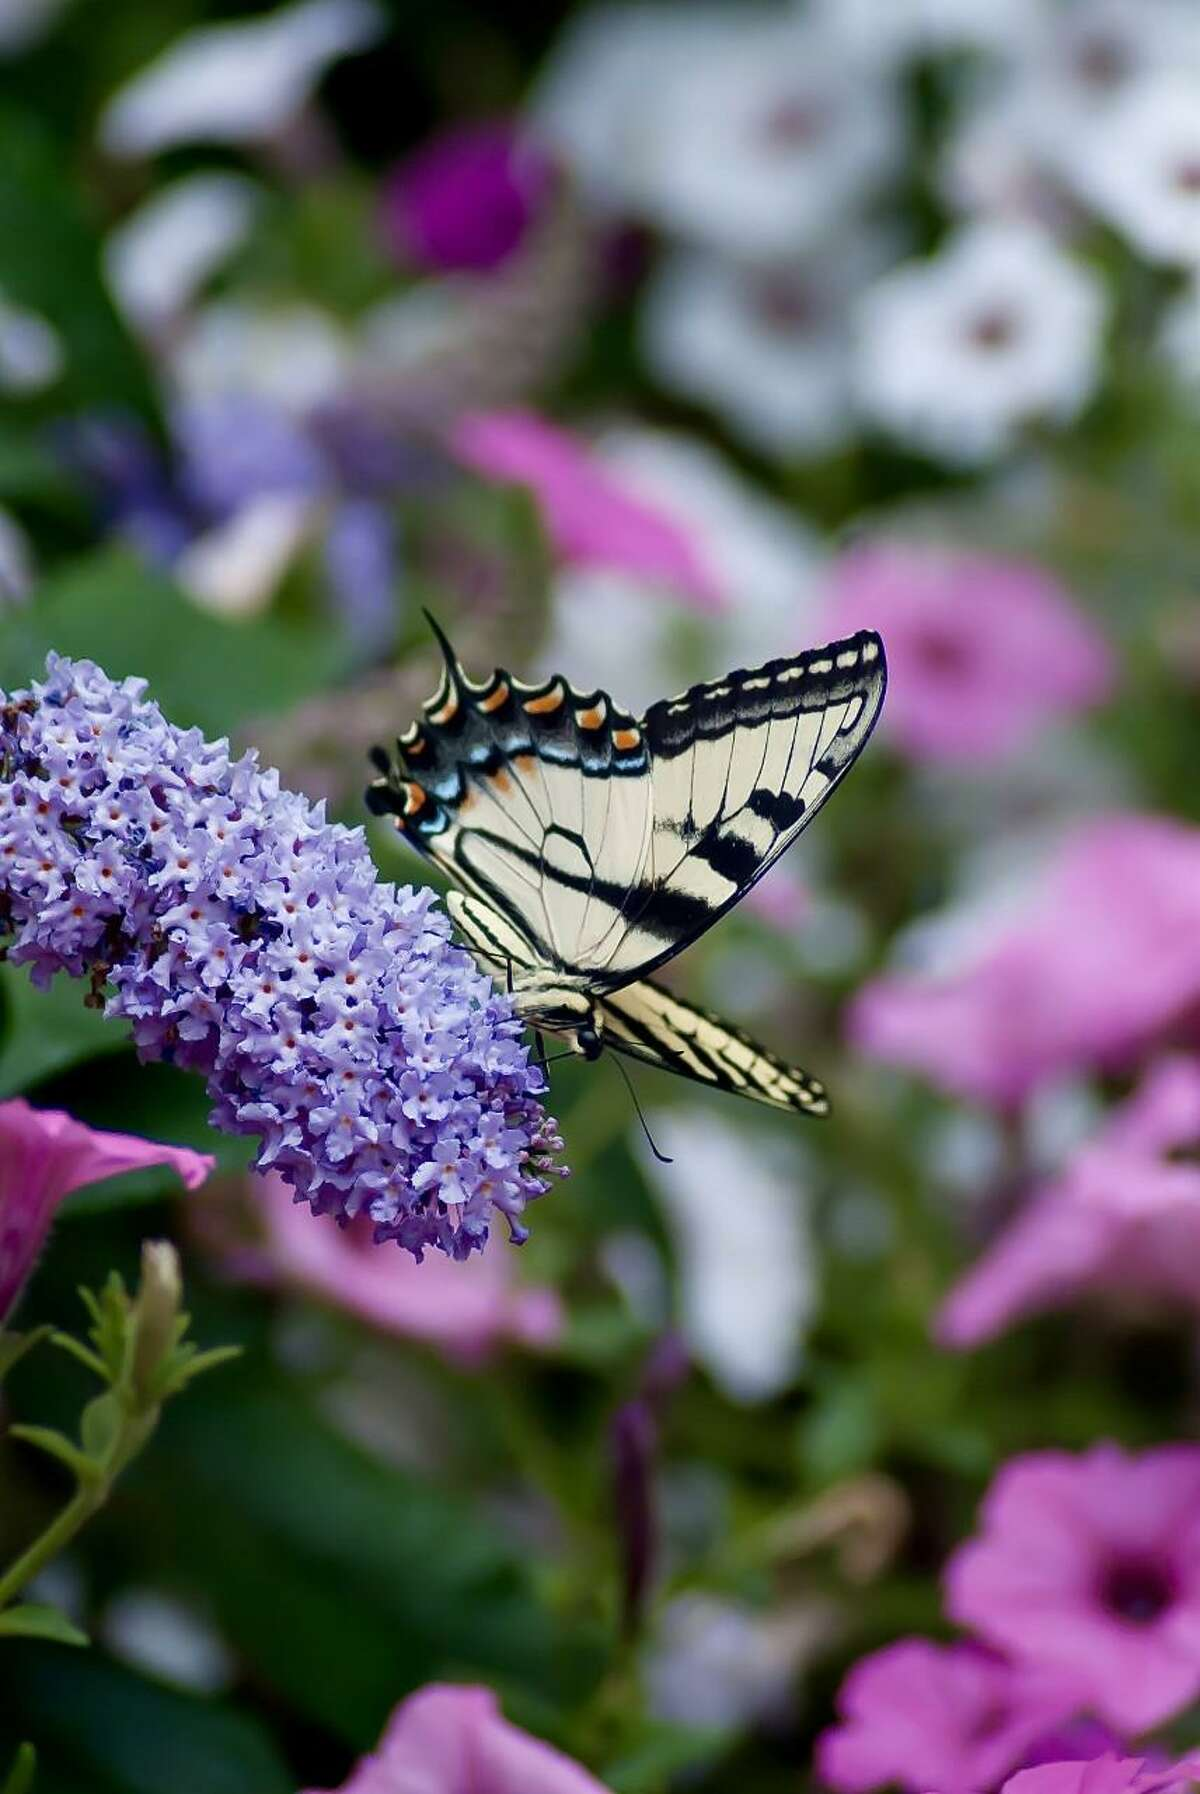 This Eastern Tiger Swallowtail visits a Pugster Amethyst buddleia that is surrounded by Supertunia Vista petunias.